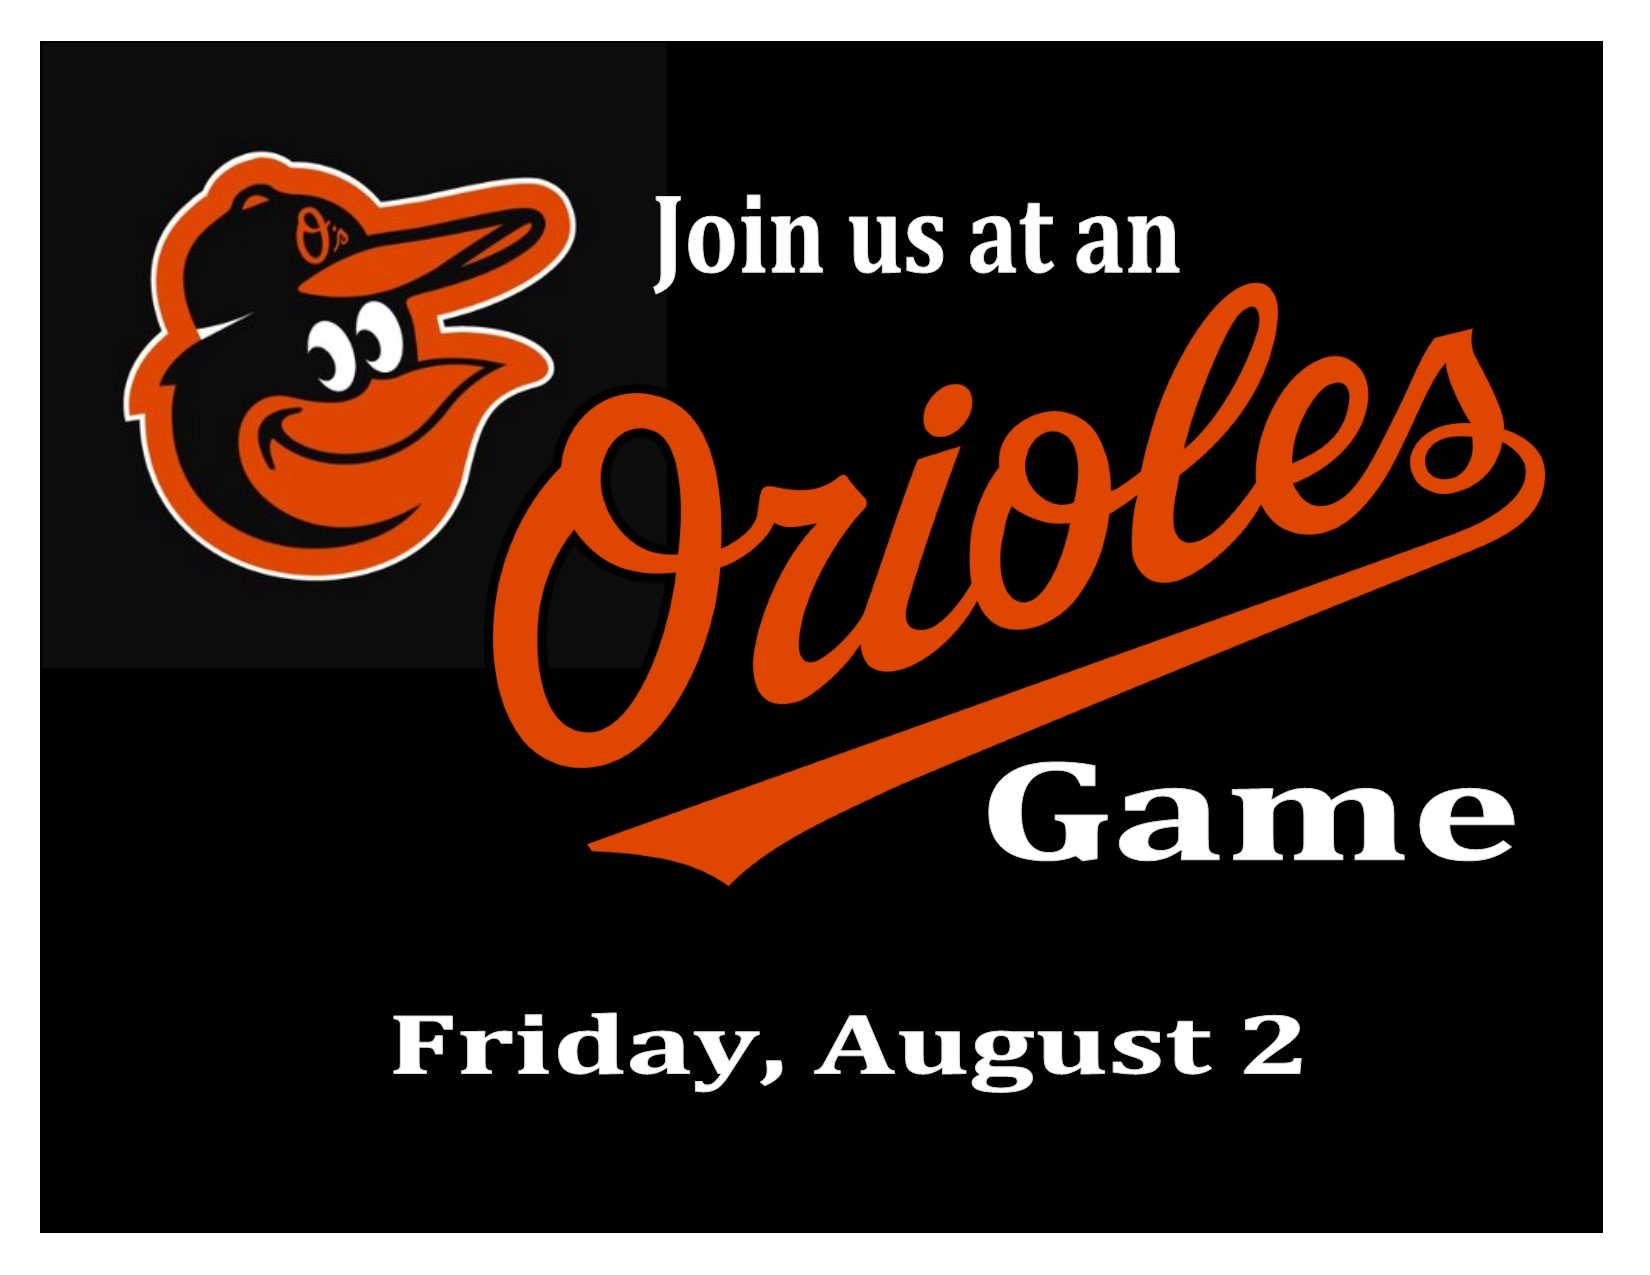 Orioles Game 2019 image